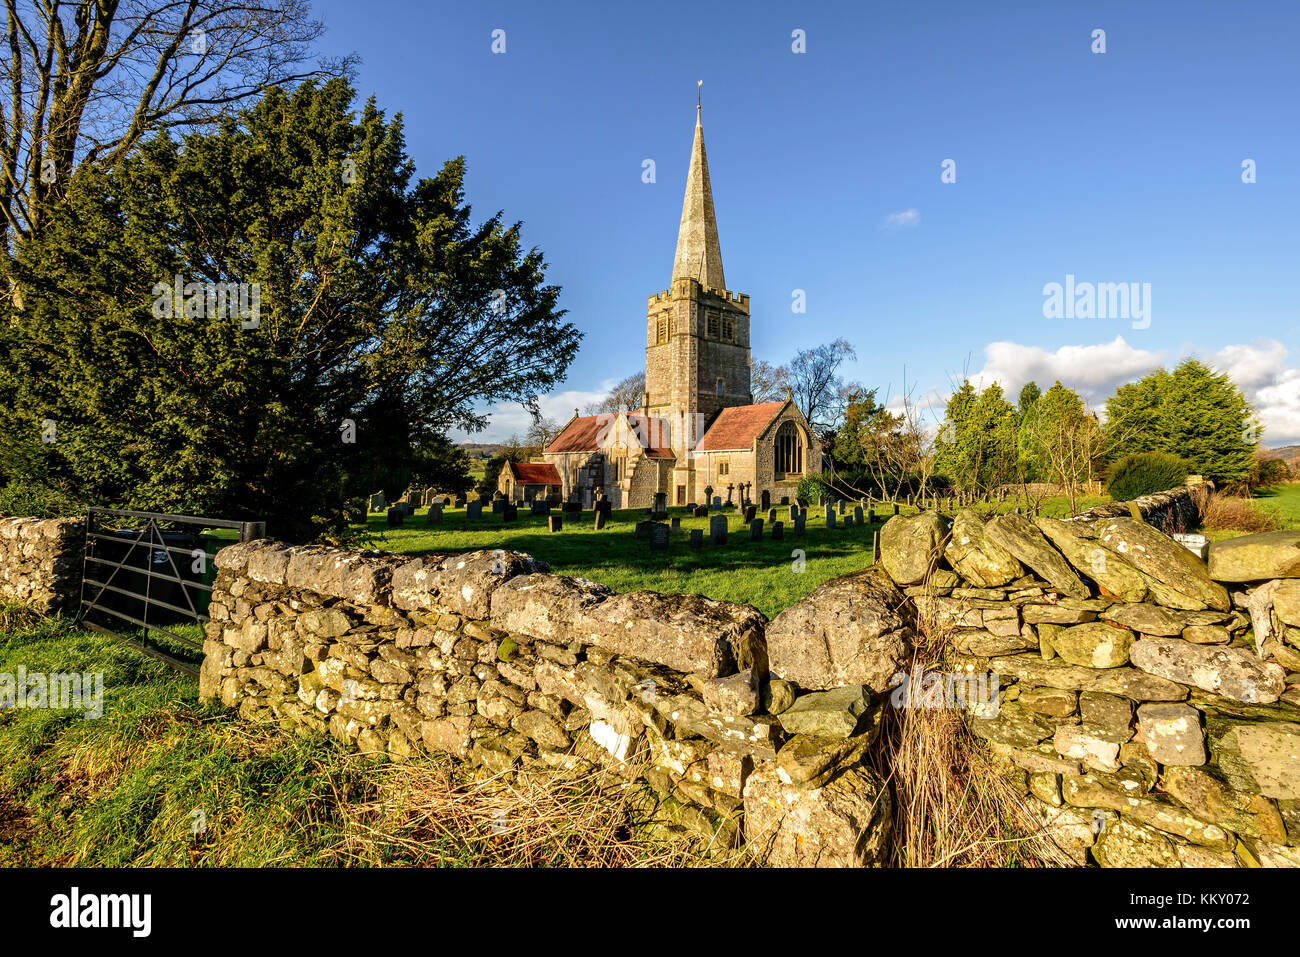 The lovely parish church of St.Peter's in the South Lakeland rural community of Field Broughton in the Lake - Stock Image